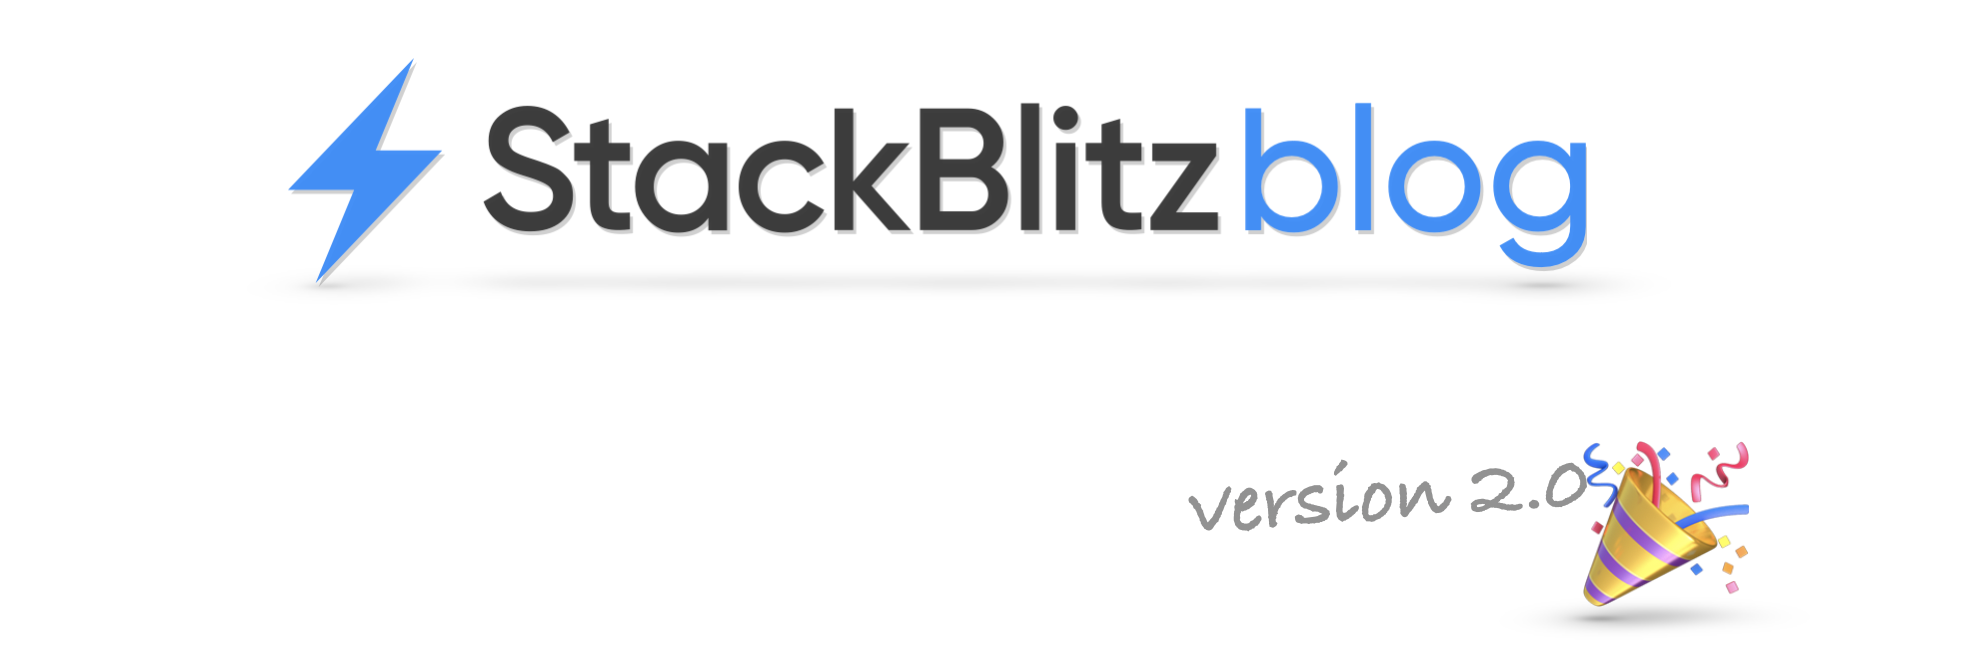 StackBlitz blog version 2.0